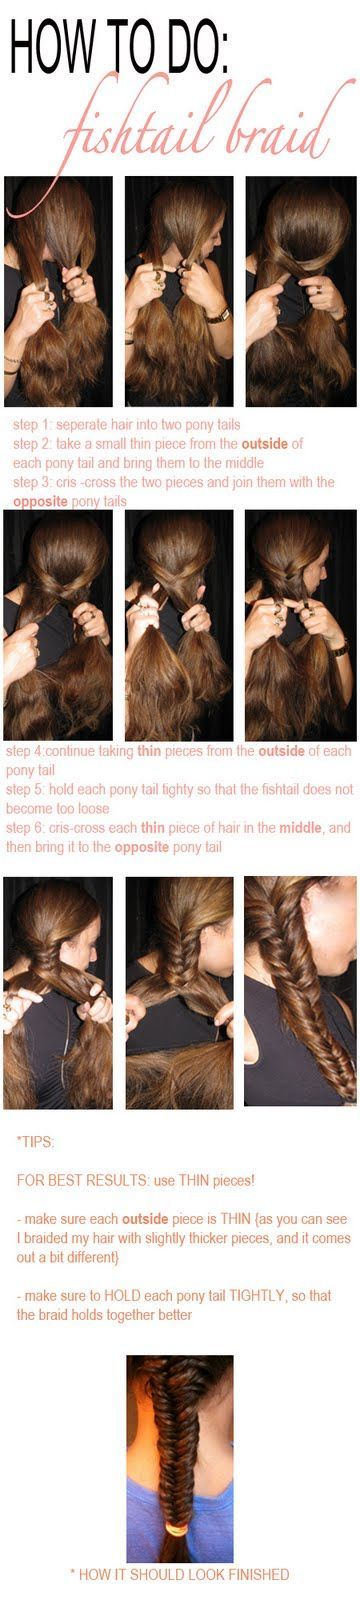 fish tail braid - diy for when I actually have enough hair to braid.